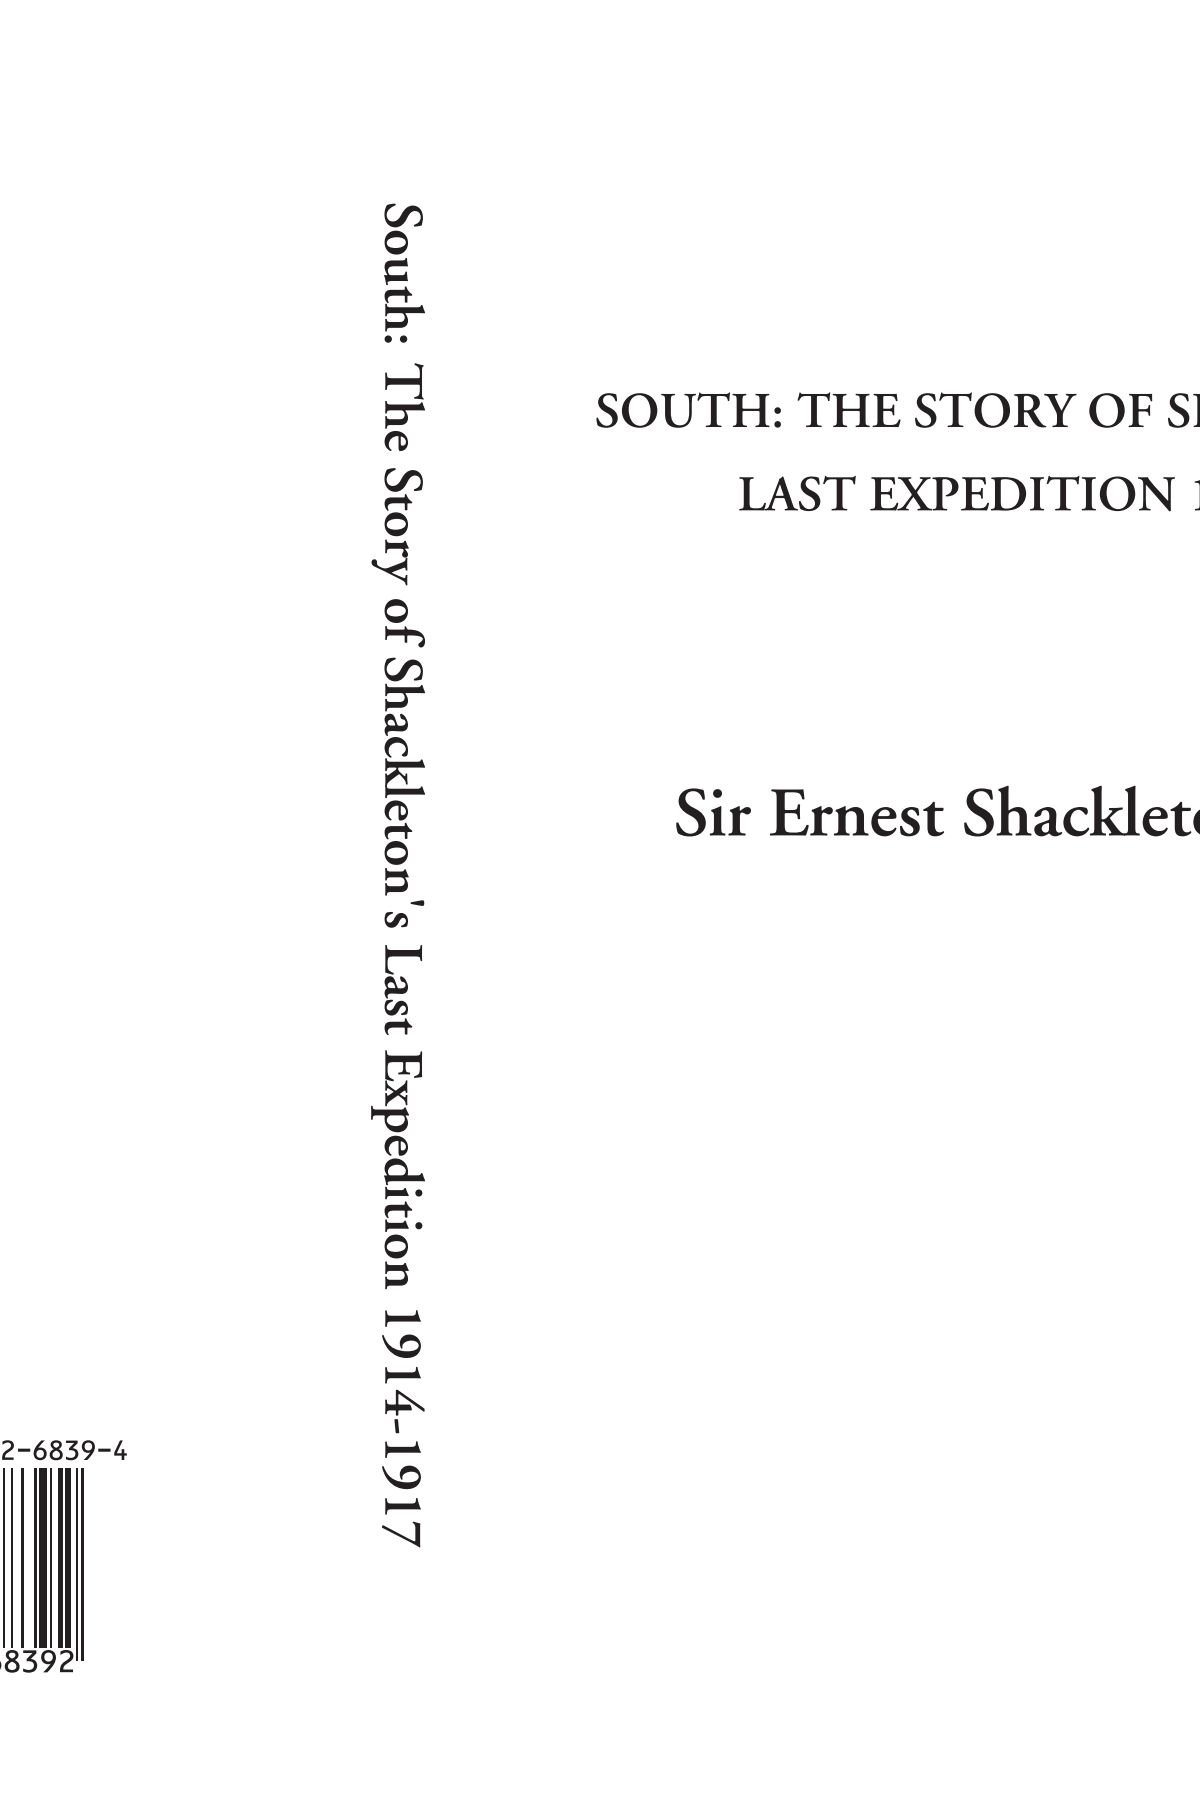 Download South: The Story of Shackleton's Last Expedition 1914-1917 PDF